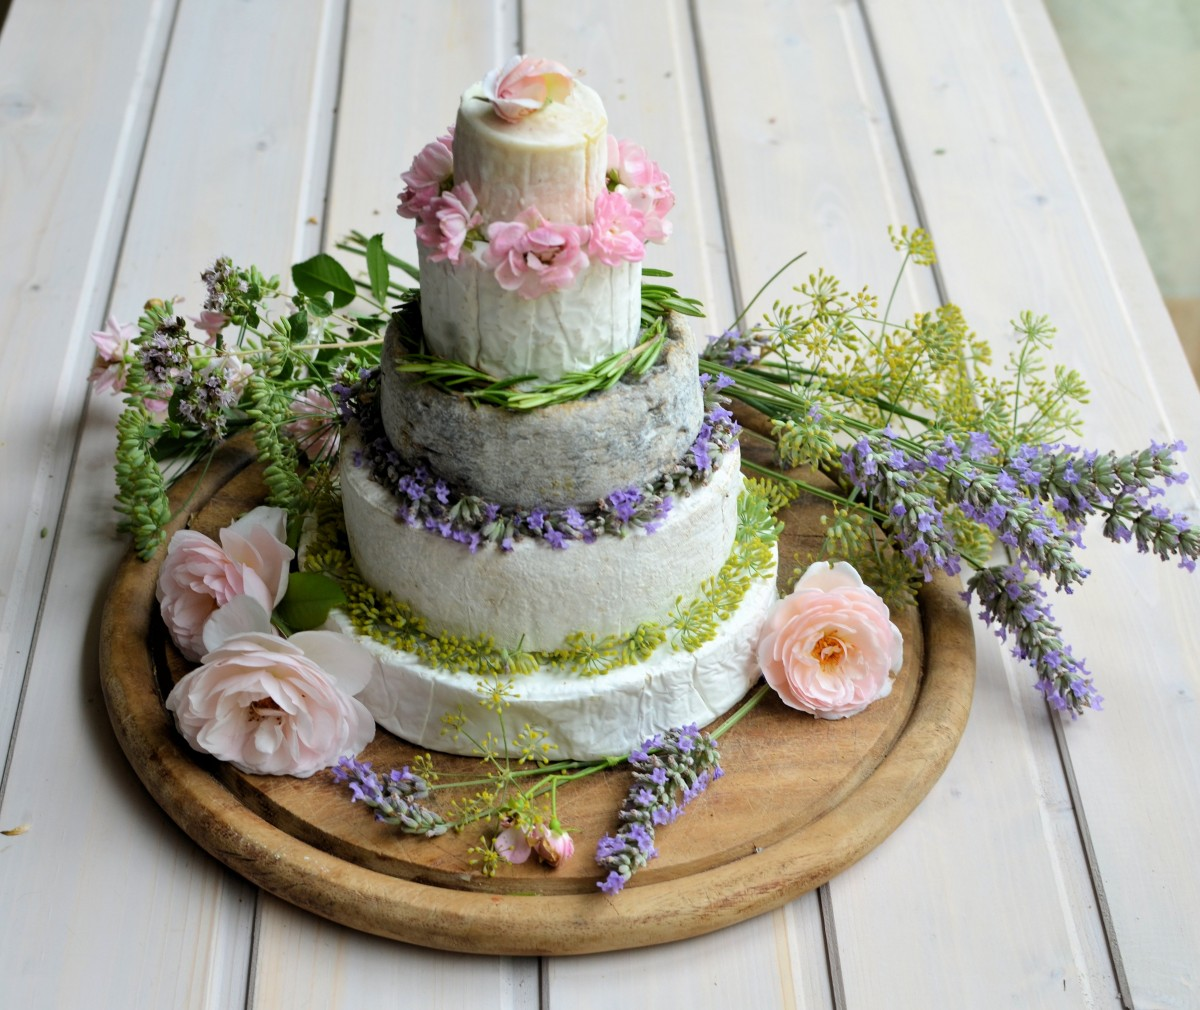 Amethyst Cheese Wedding Cake: Summer French Cheese Cake Tower